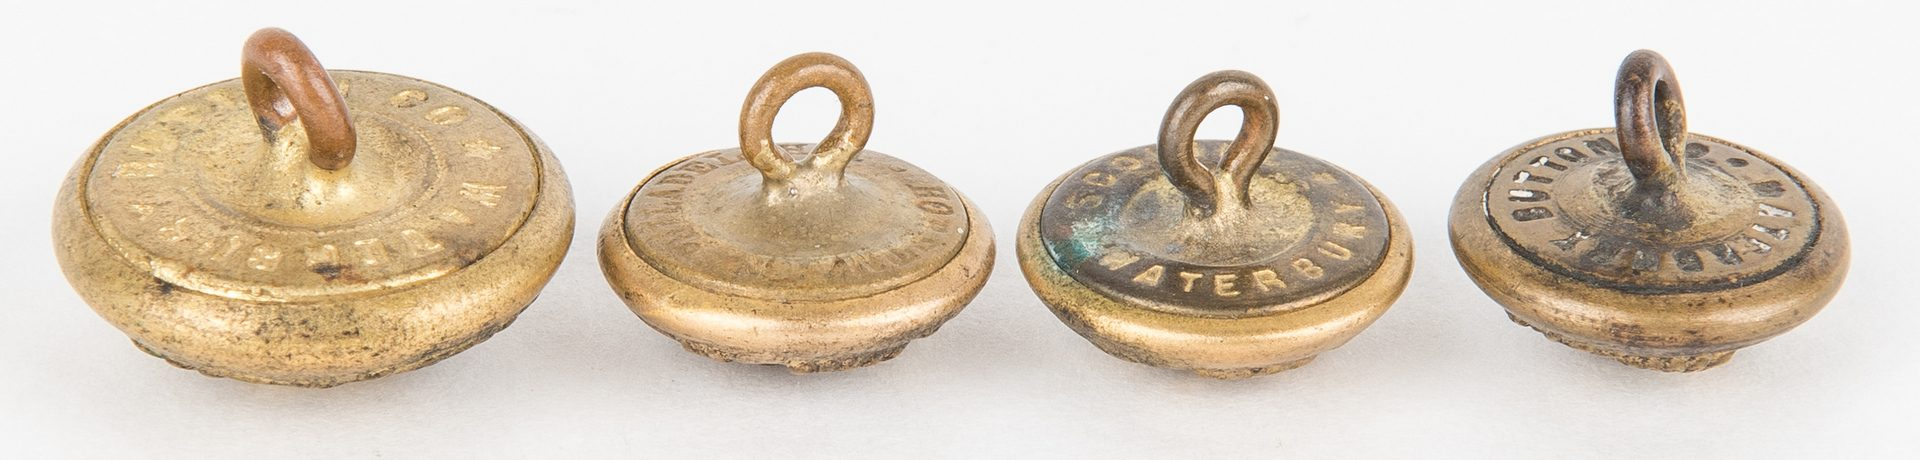 Lot 275: 19 Civil War and Later Items, incl. Belt Plate, Buttons